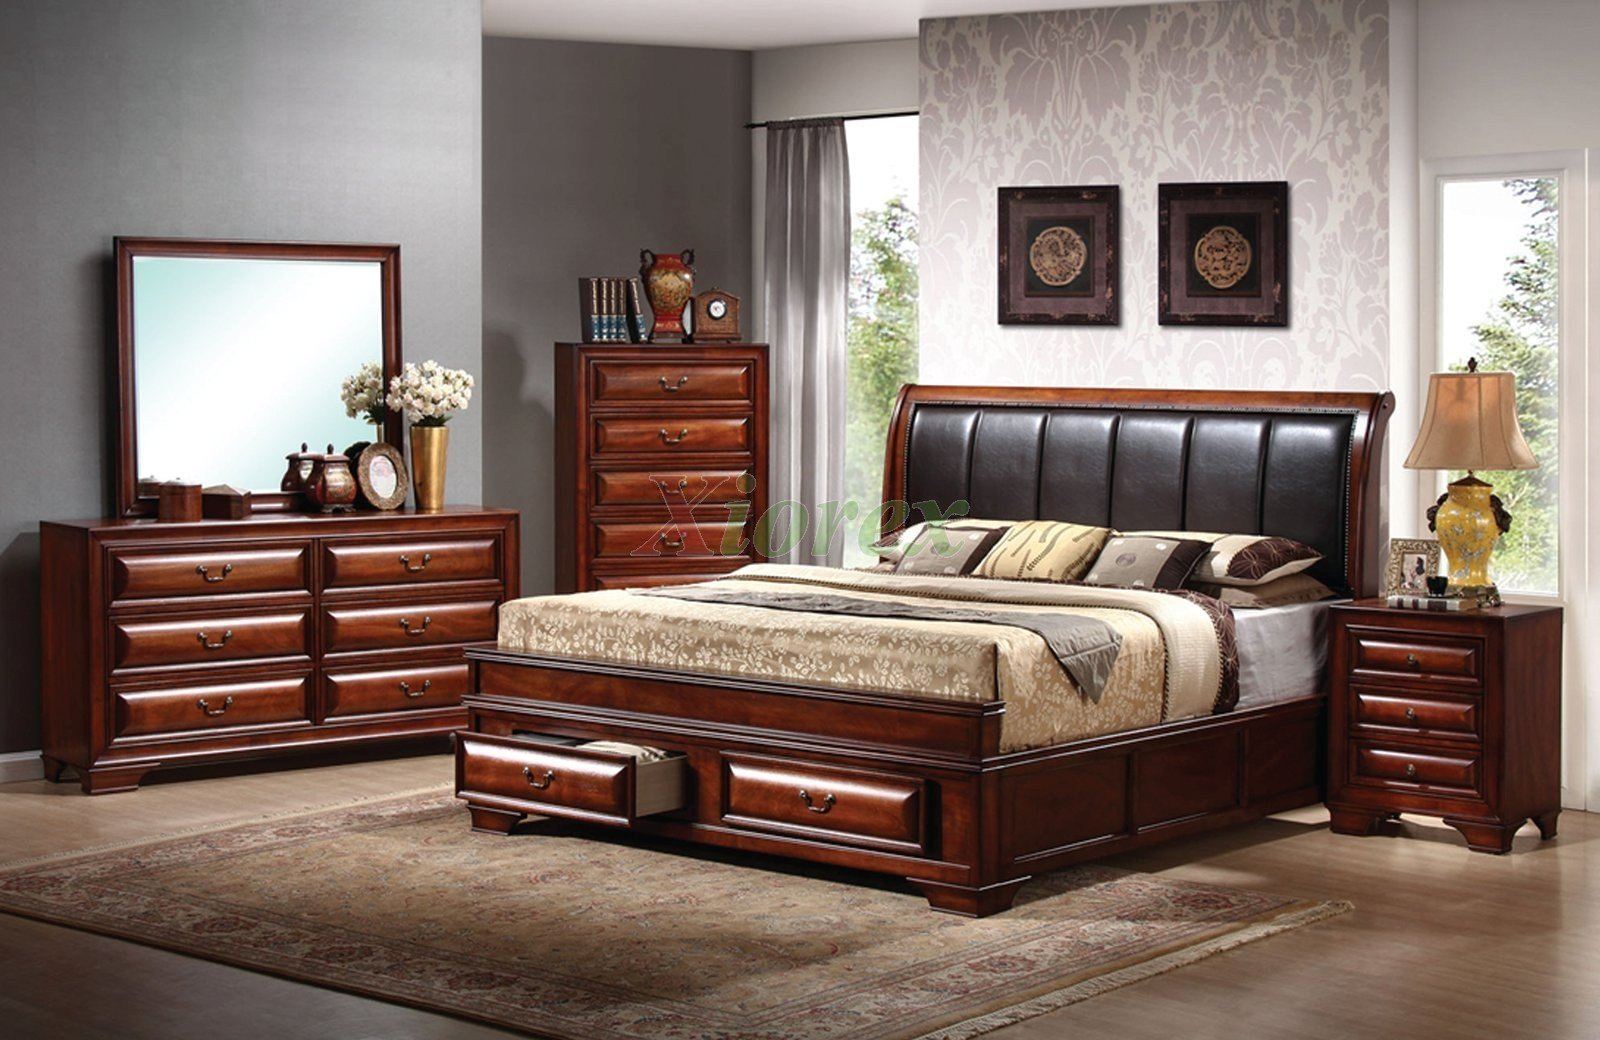 Best Platform Bedroom Furniture Set With Leather Headboard Beds 115 Xiorex With Pictures